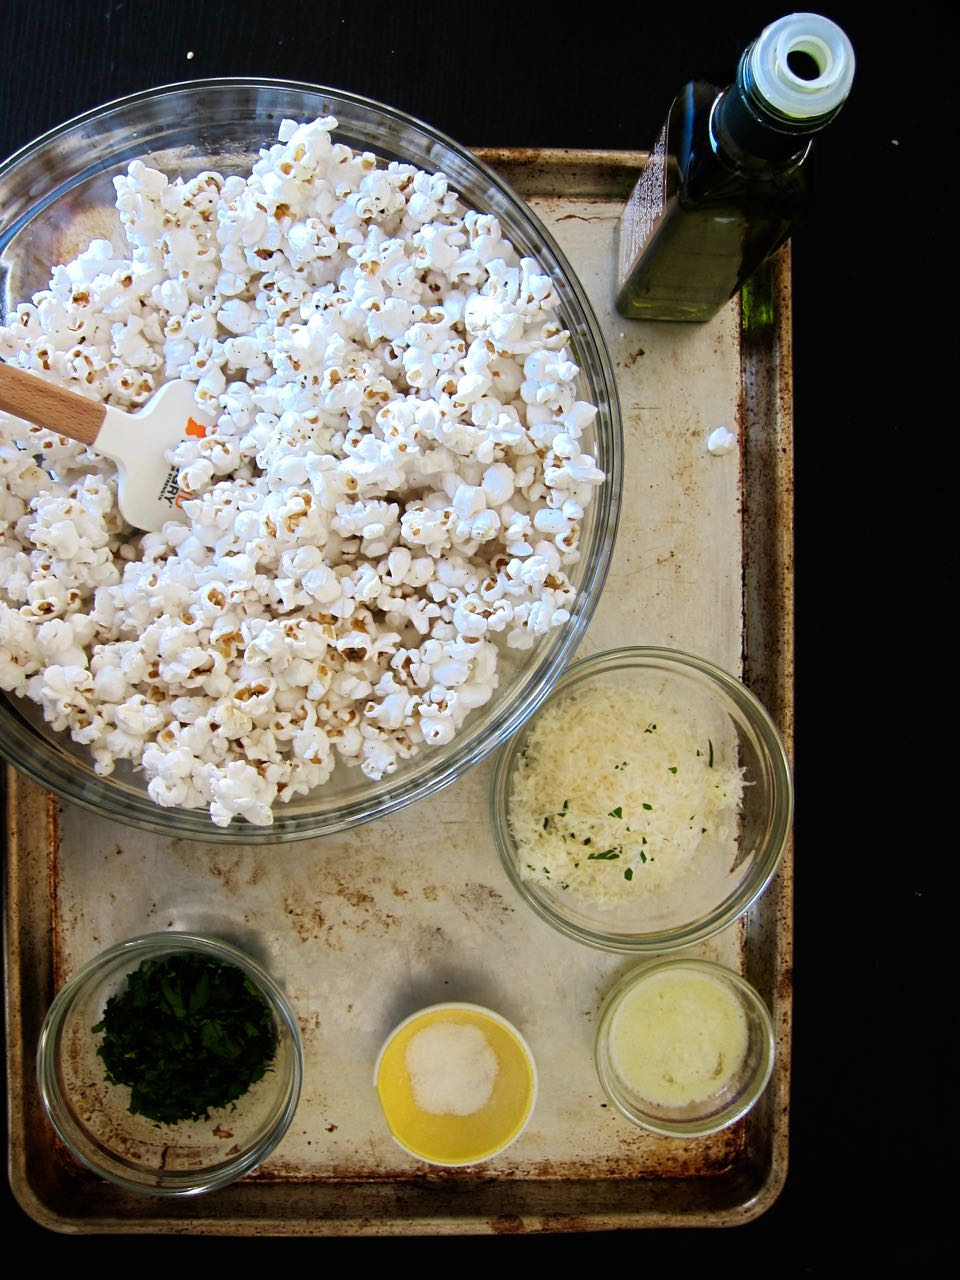 Truffle popcorn igredients